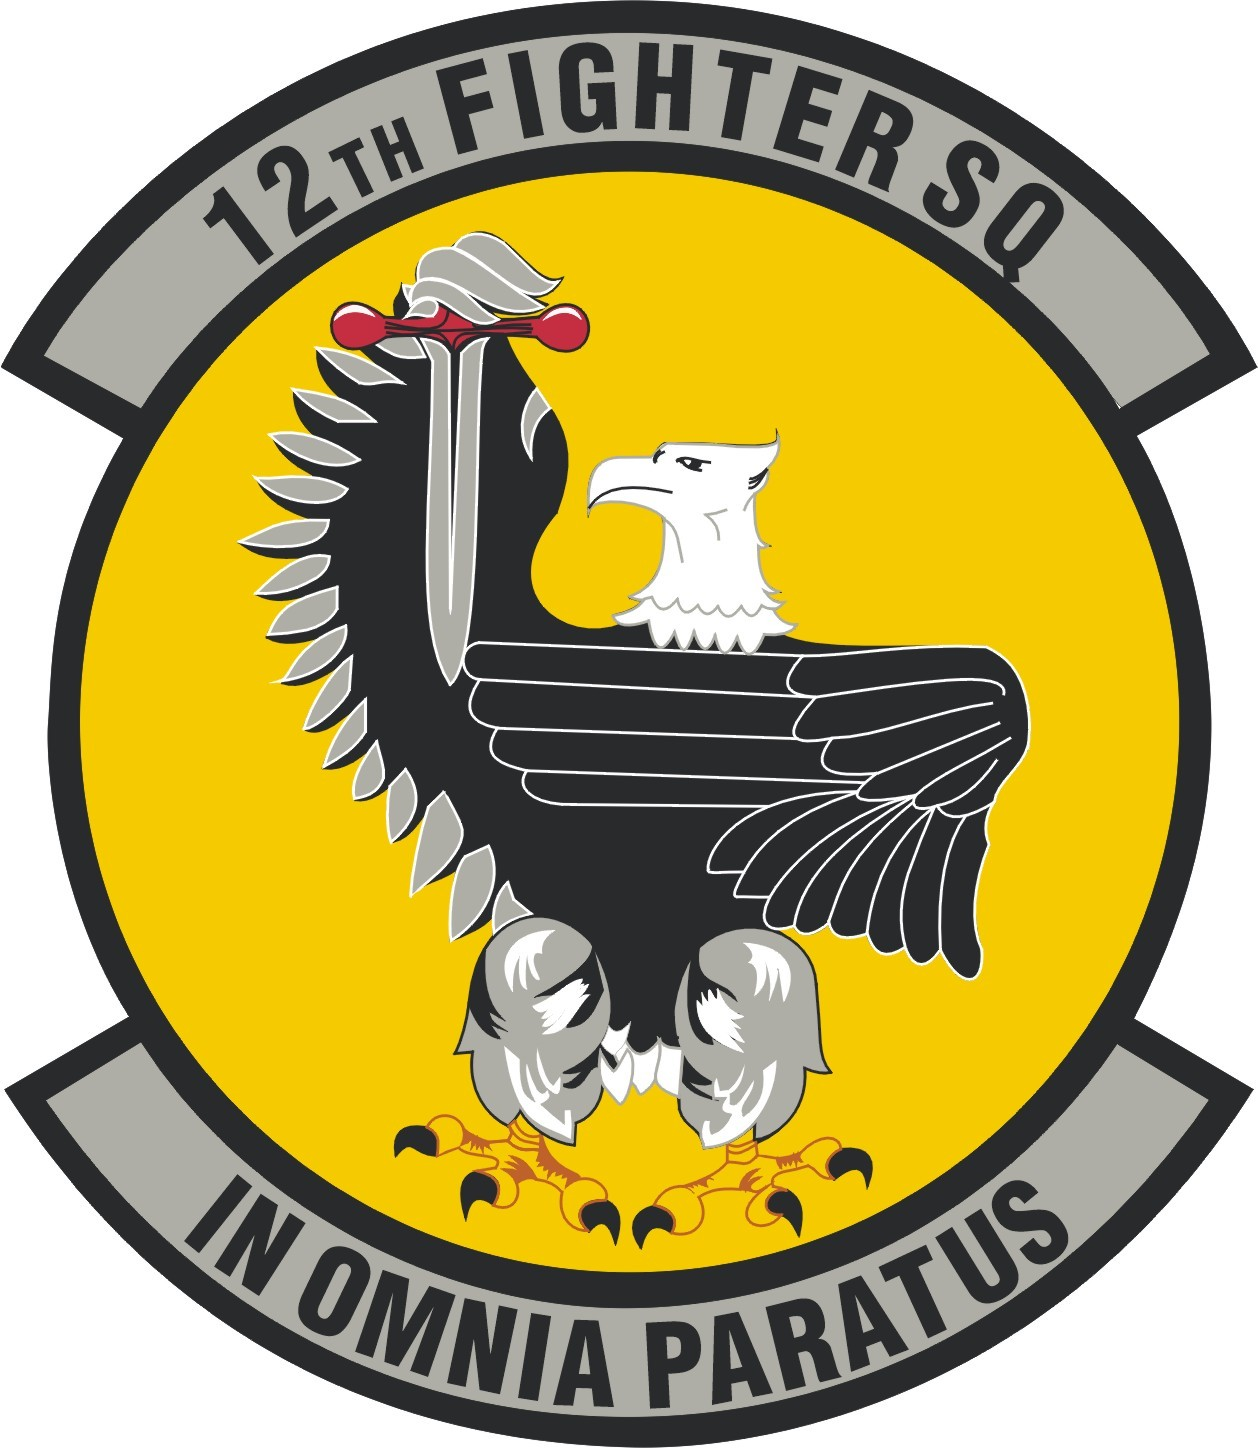 Fighter Squadron Logos 12th Fighter Squadron.jpg